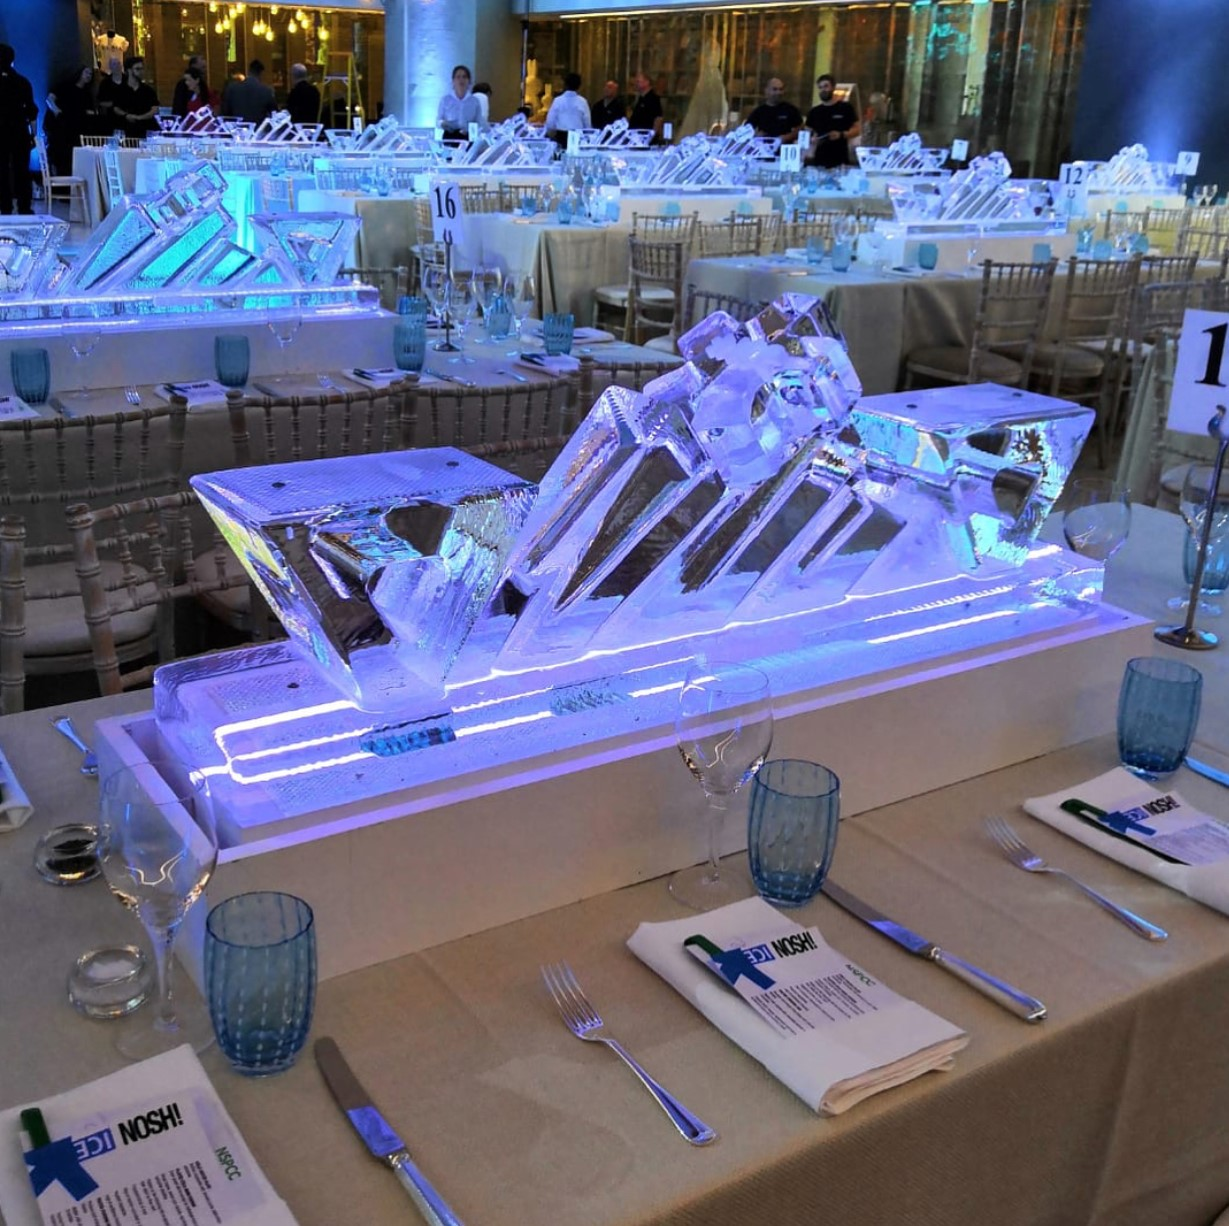 table centre ice sculpture